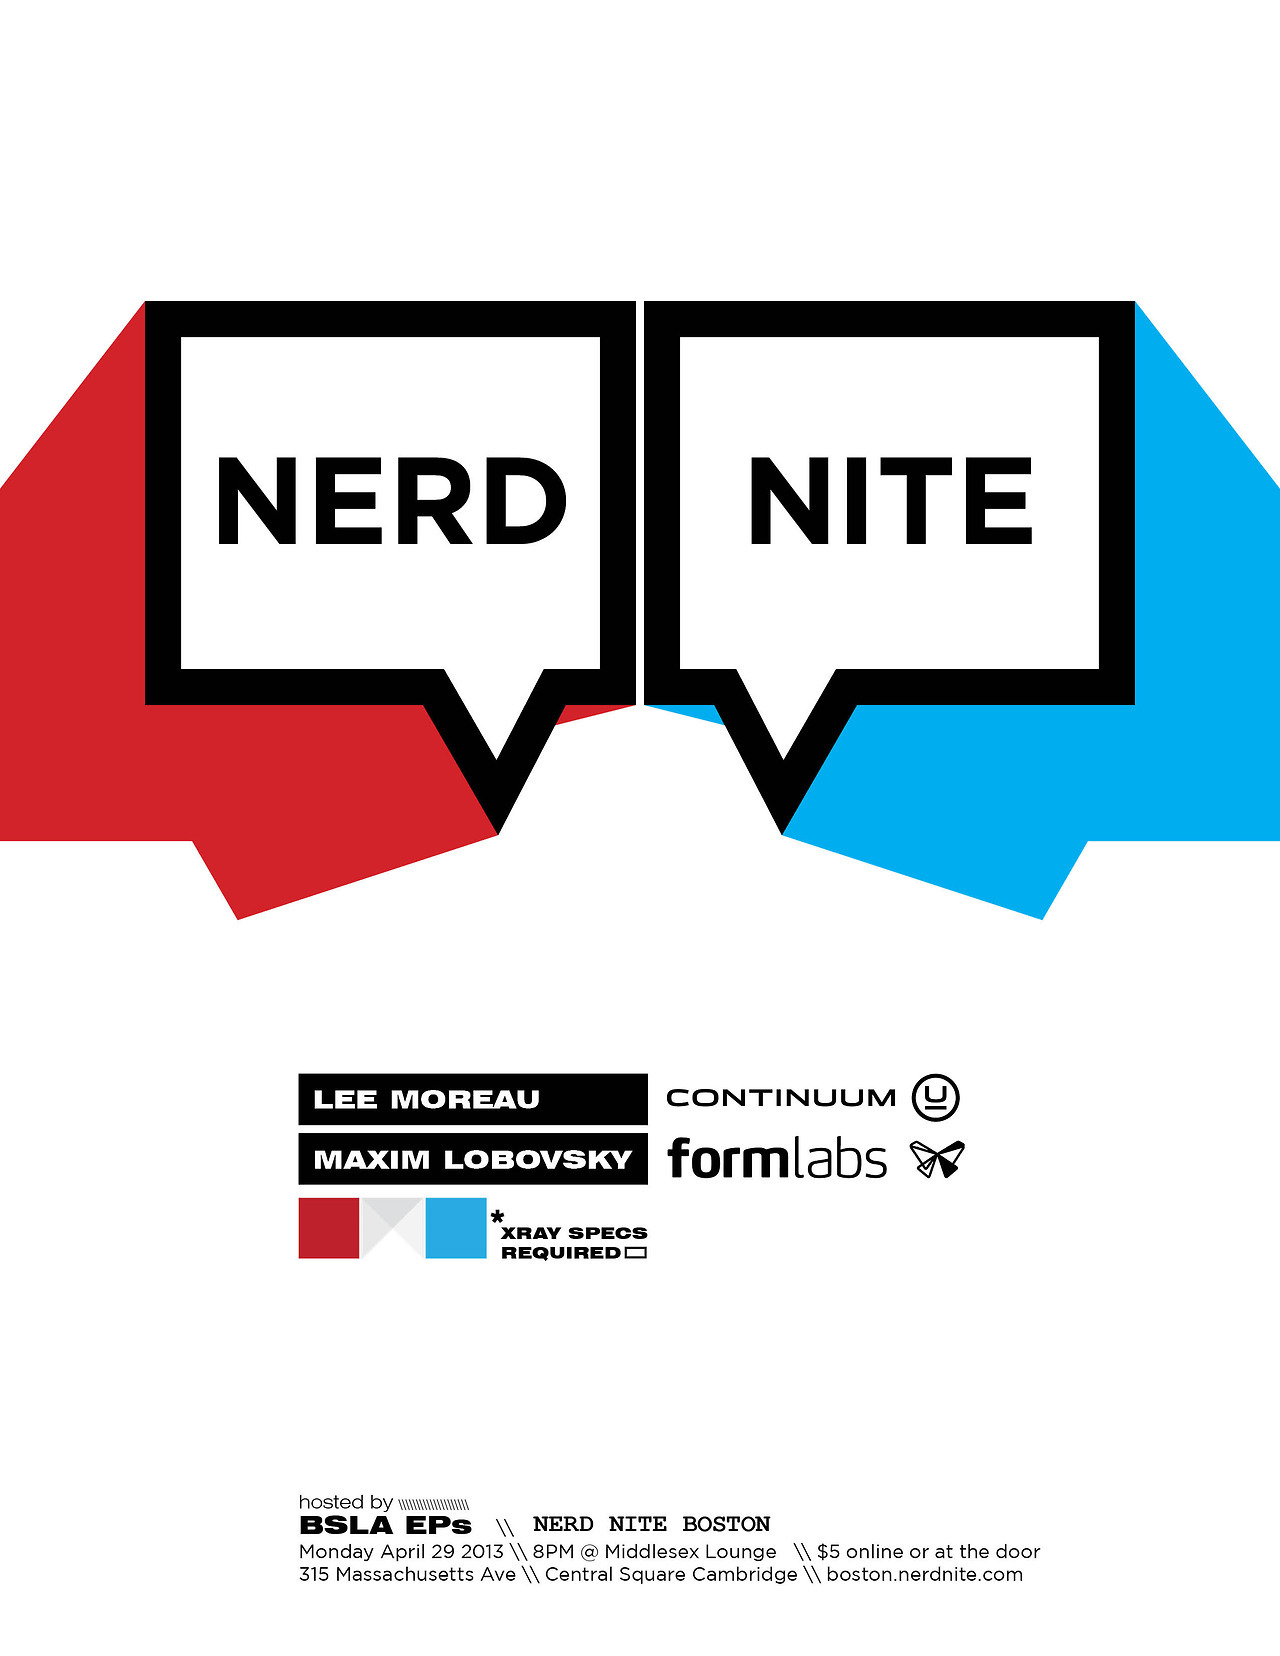 The BSLA EPs are hosting nerd nite this Monday…and we're making efforts to reach out to the larger design community beyond landscape architecture; Lee Moreau from Continuum Innovation and Maxim from Formlabs will be discussing their work at the Middlesex Lounge on April 29th in Cambridge.   Be a dork and show up early for free drinks courtesy of ReCover. Big ups to Landscape Forms for their continued financial support.   Full details at nerd nite site:  http://boston.nerdnite.com/2013/04/23/nerd-nite-42913/     Graphic design by fellow Sasakian, the ever talented Tera Hatfield.  http://terahatfield.com/